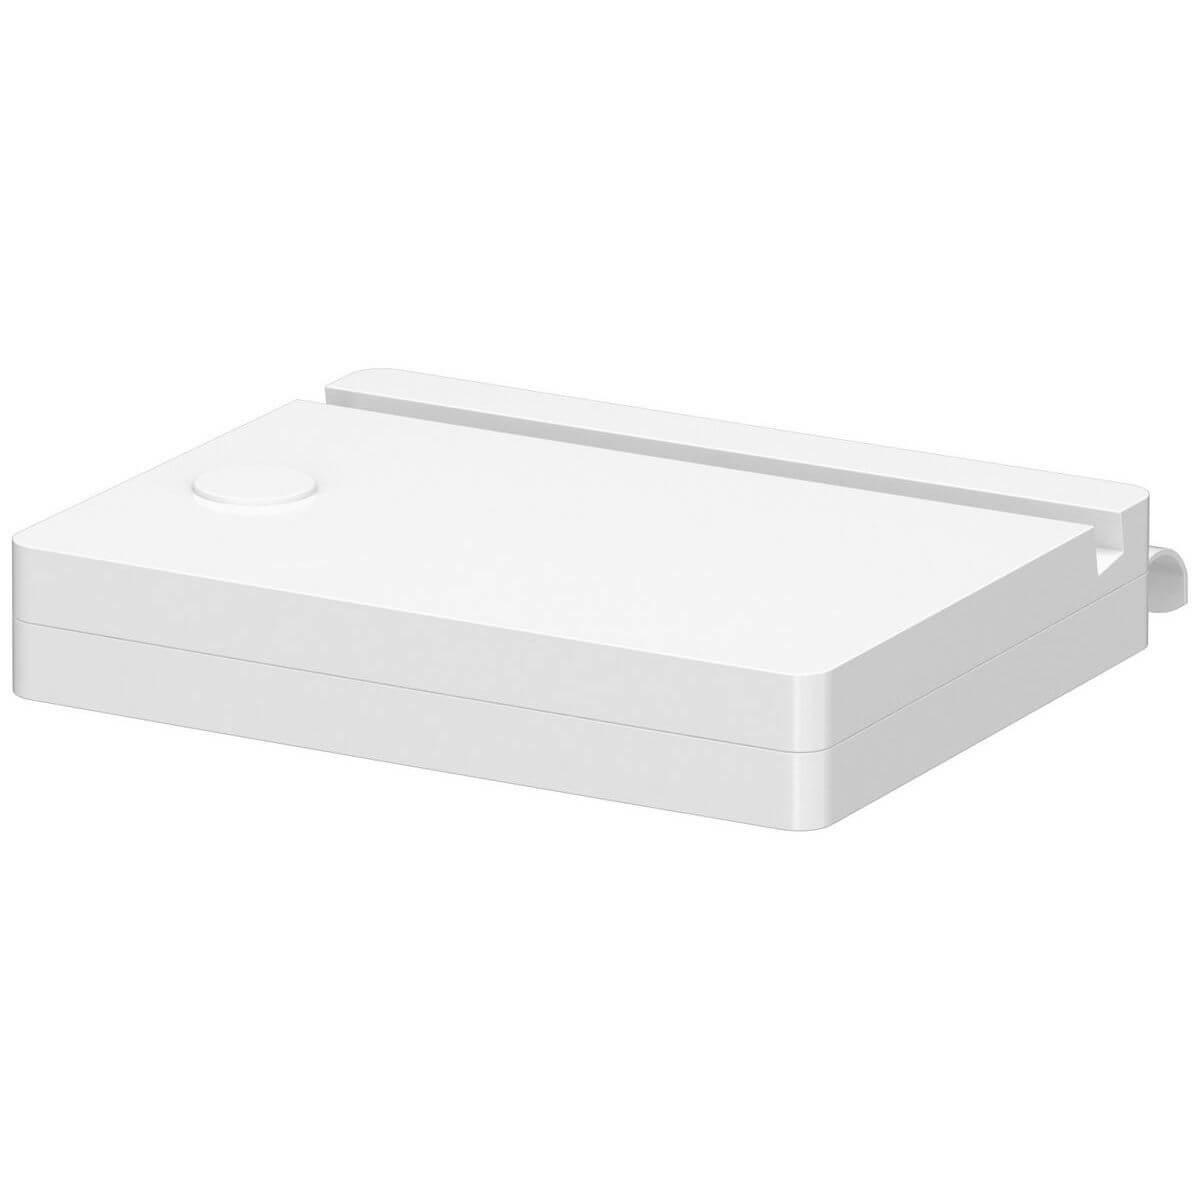 CLICKON by Flexa Support tablette tactile Blanc pour lit Classic